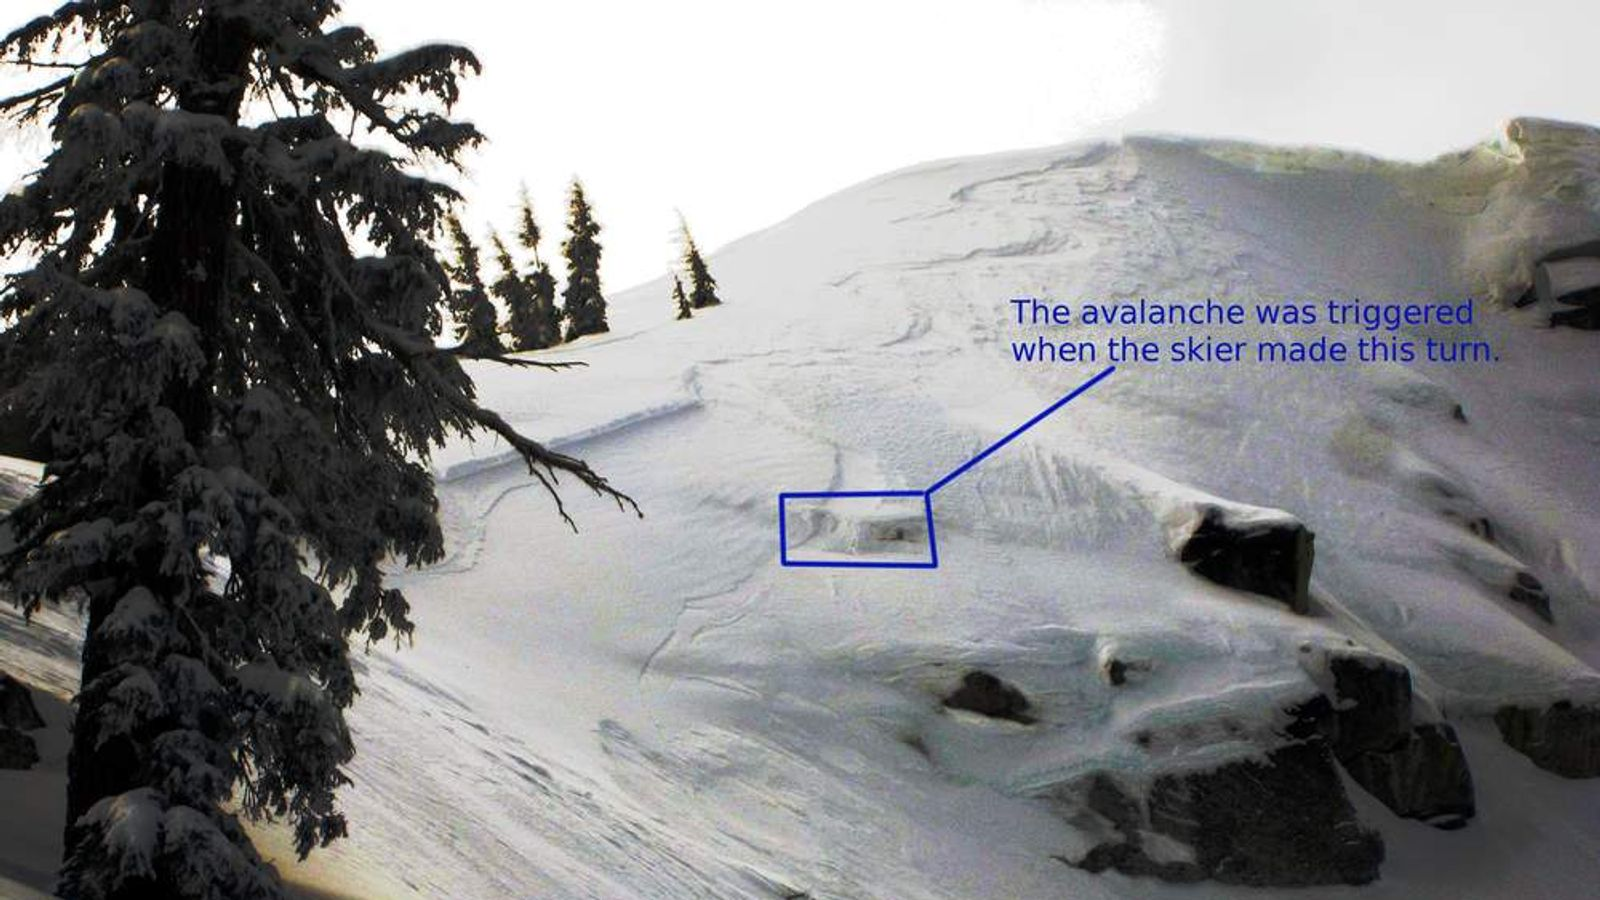 The avalanche trigger spot by the skier